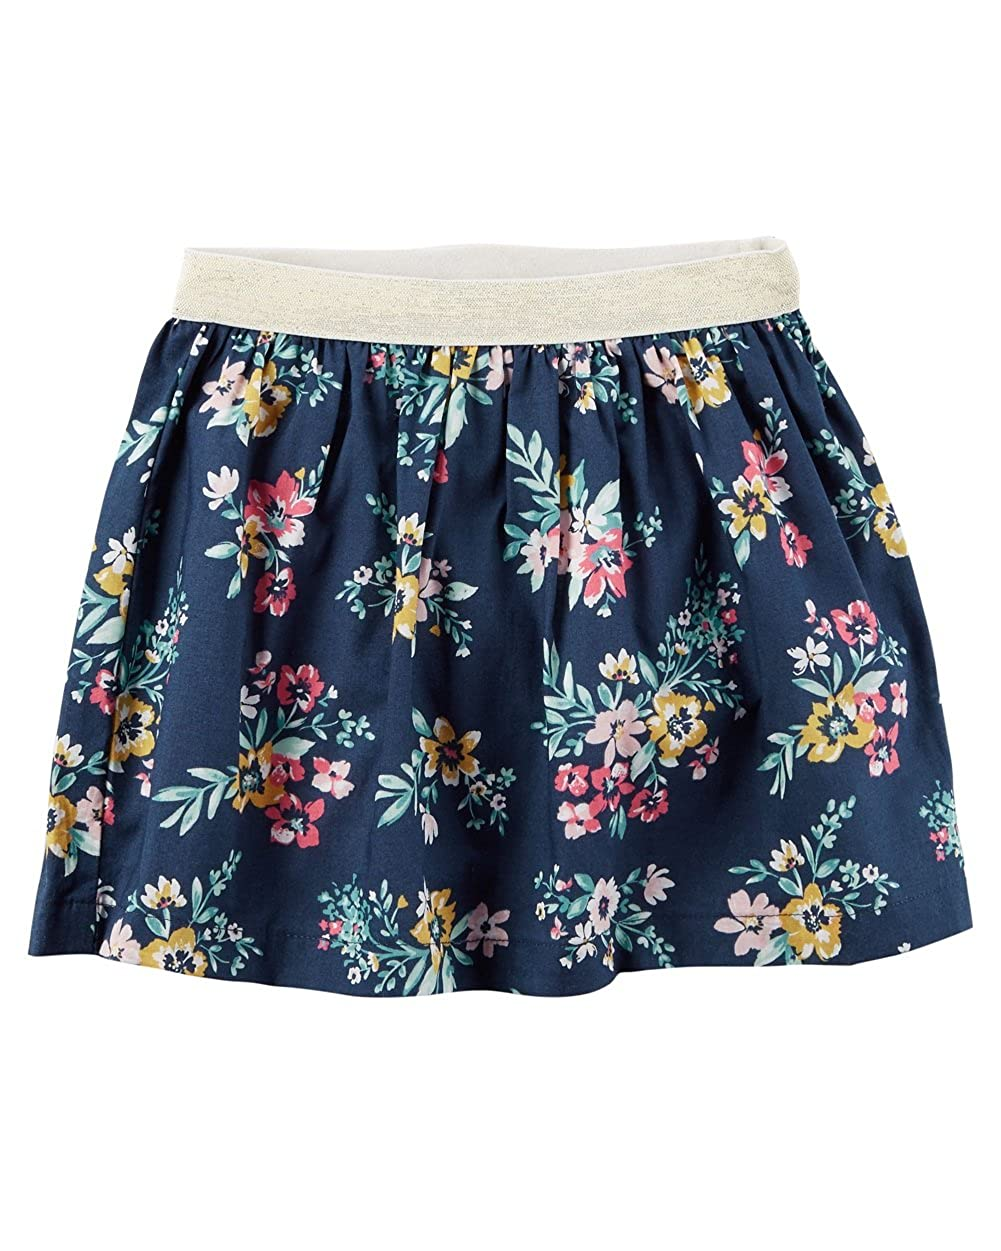 2-Toddler Carters Little Girls Navy Floral Metallic Skirt